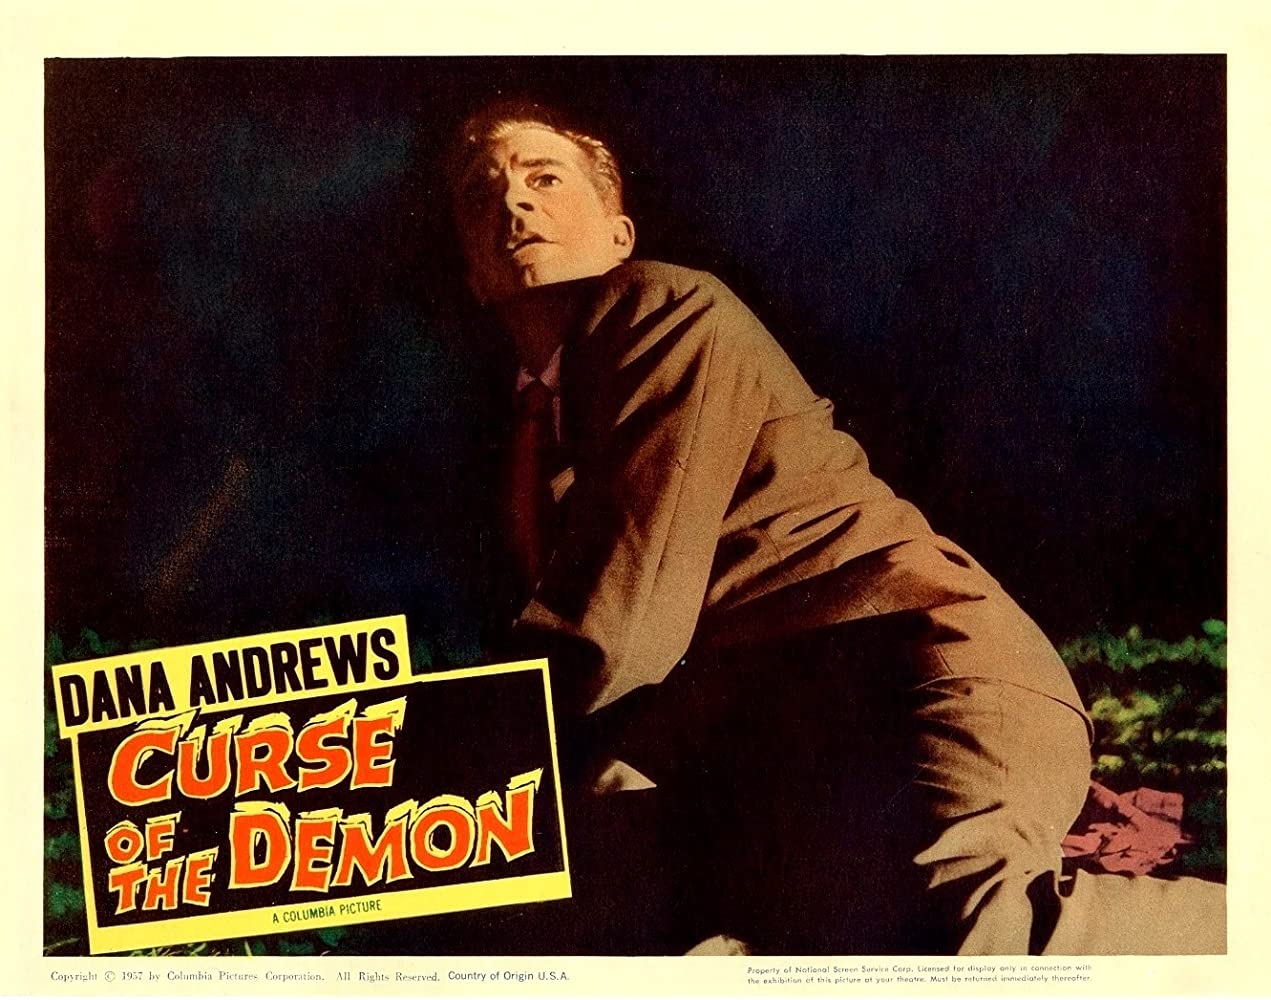 Dana Andrews in Night of the Demon (1957)